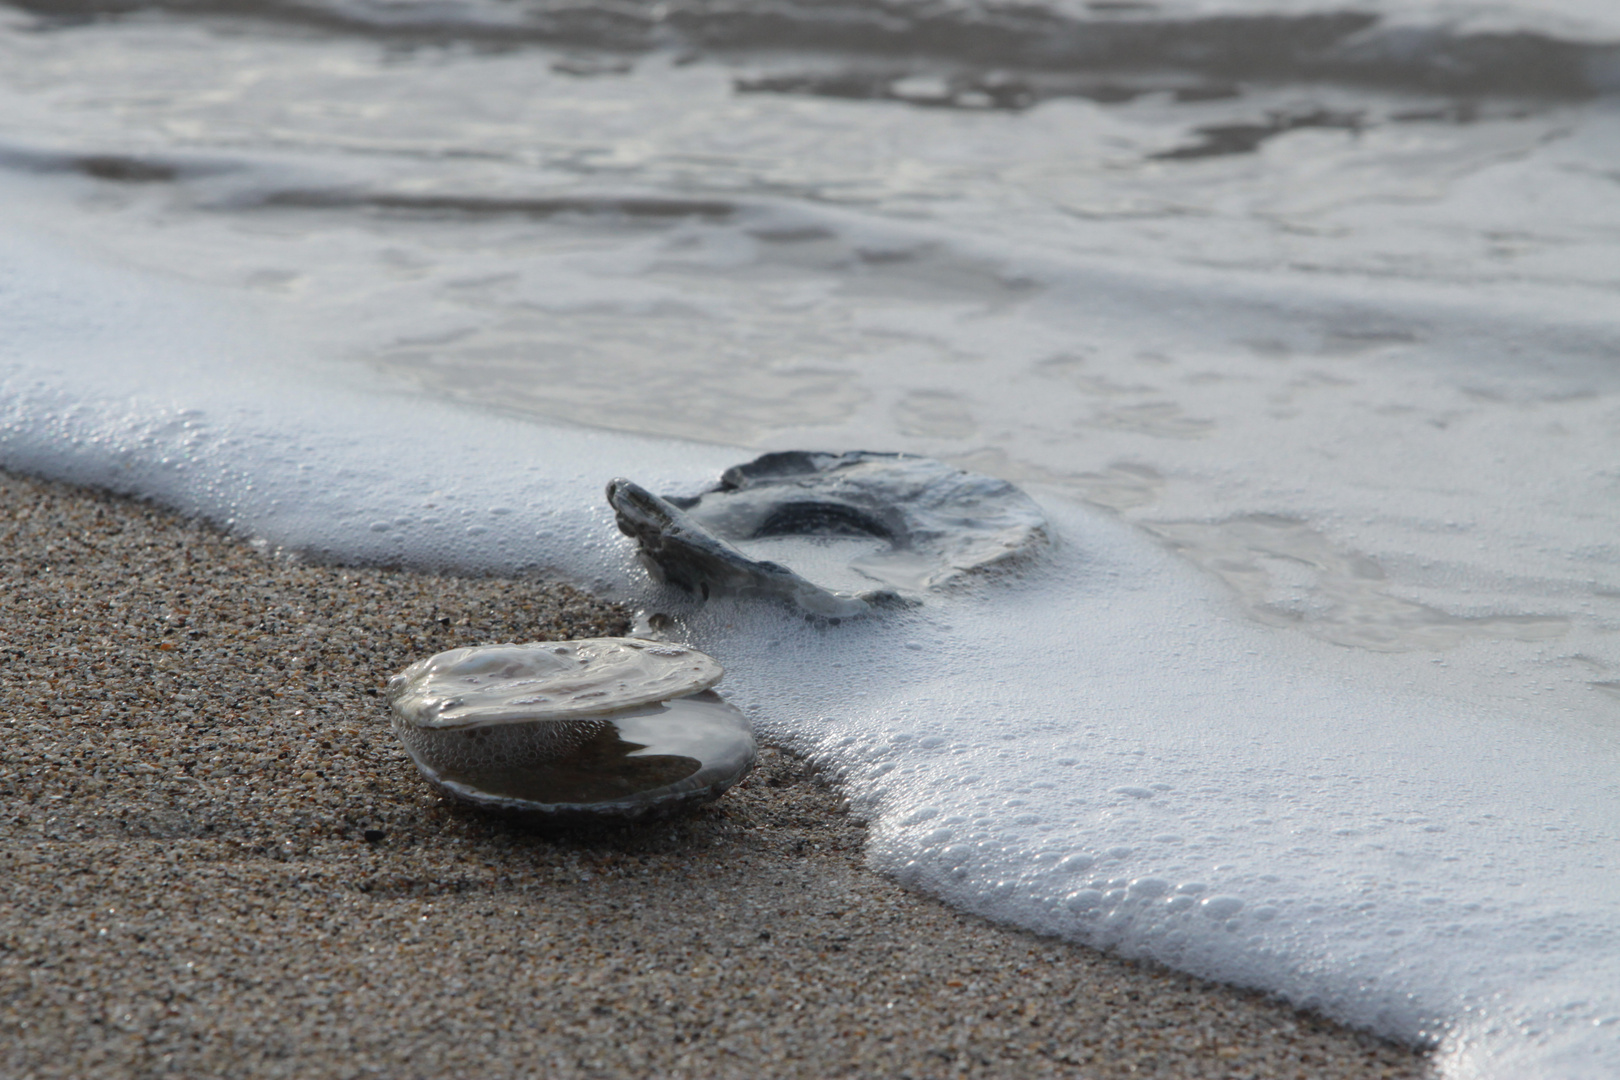 Coquillage et nouvelle vague